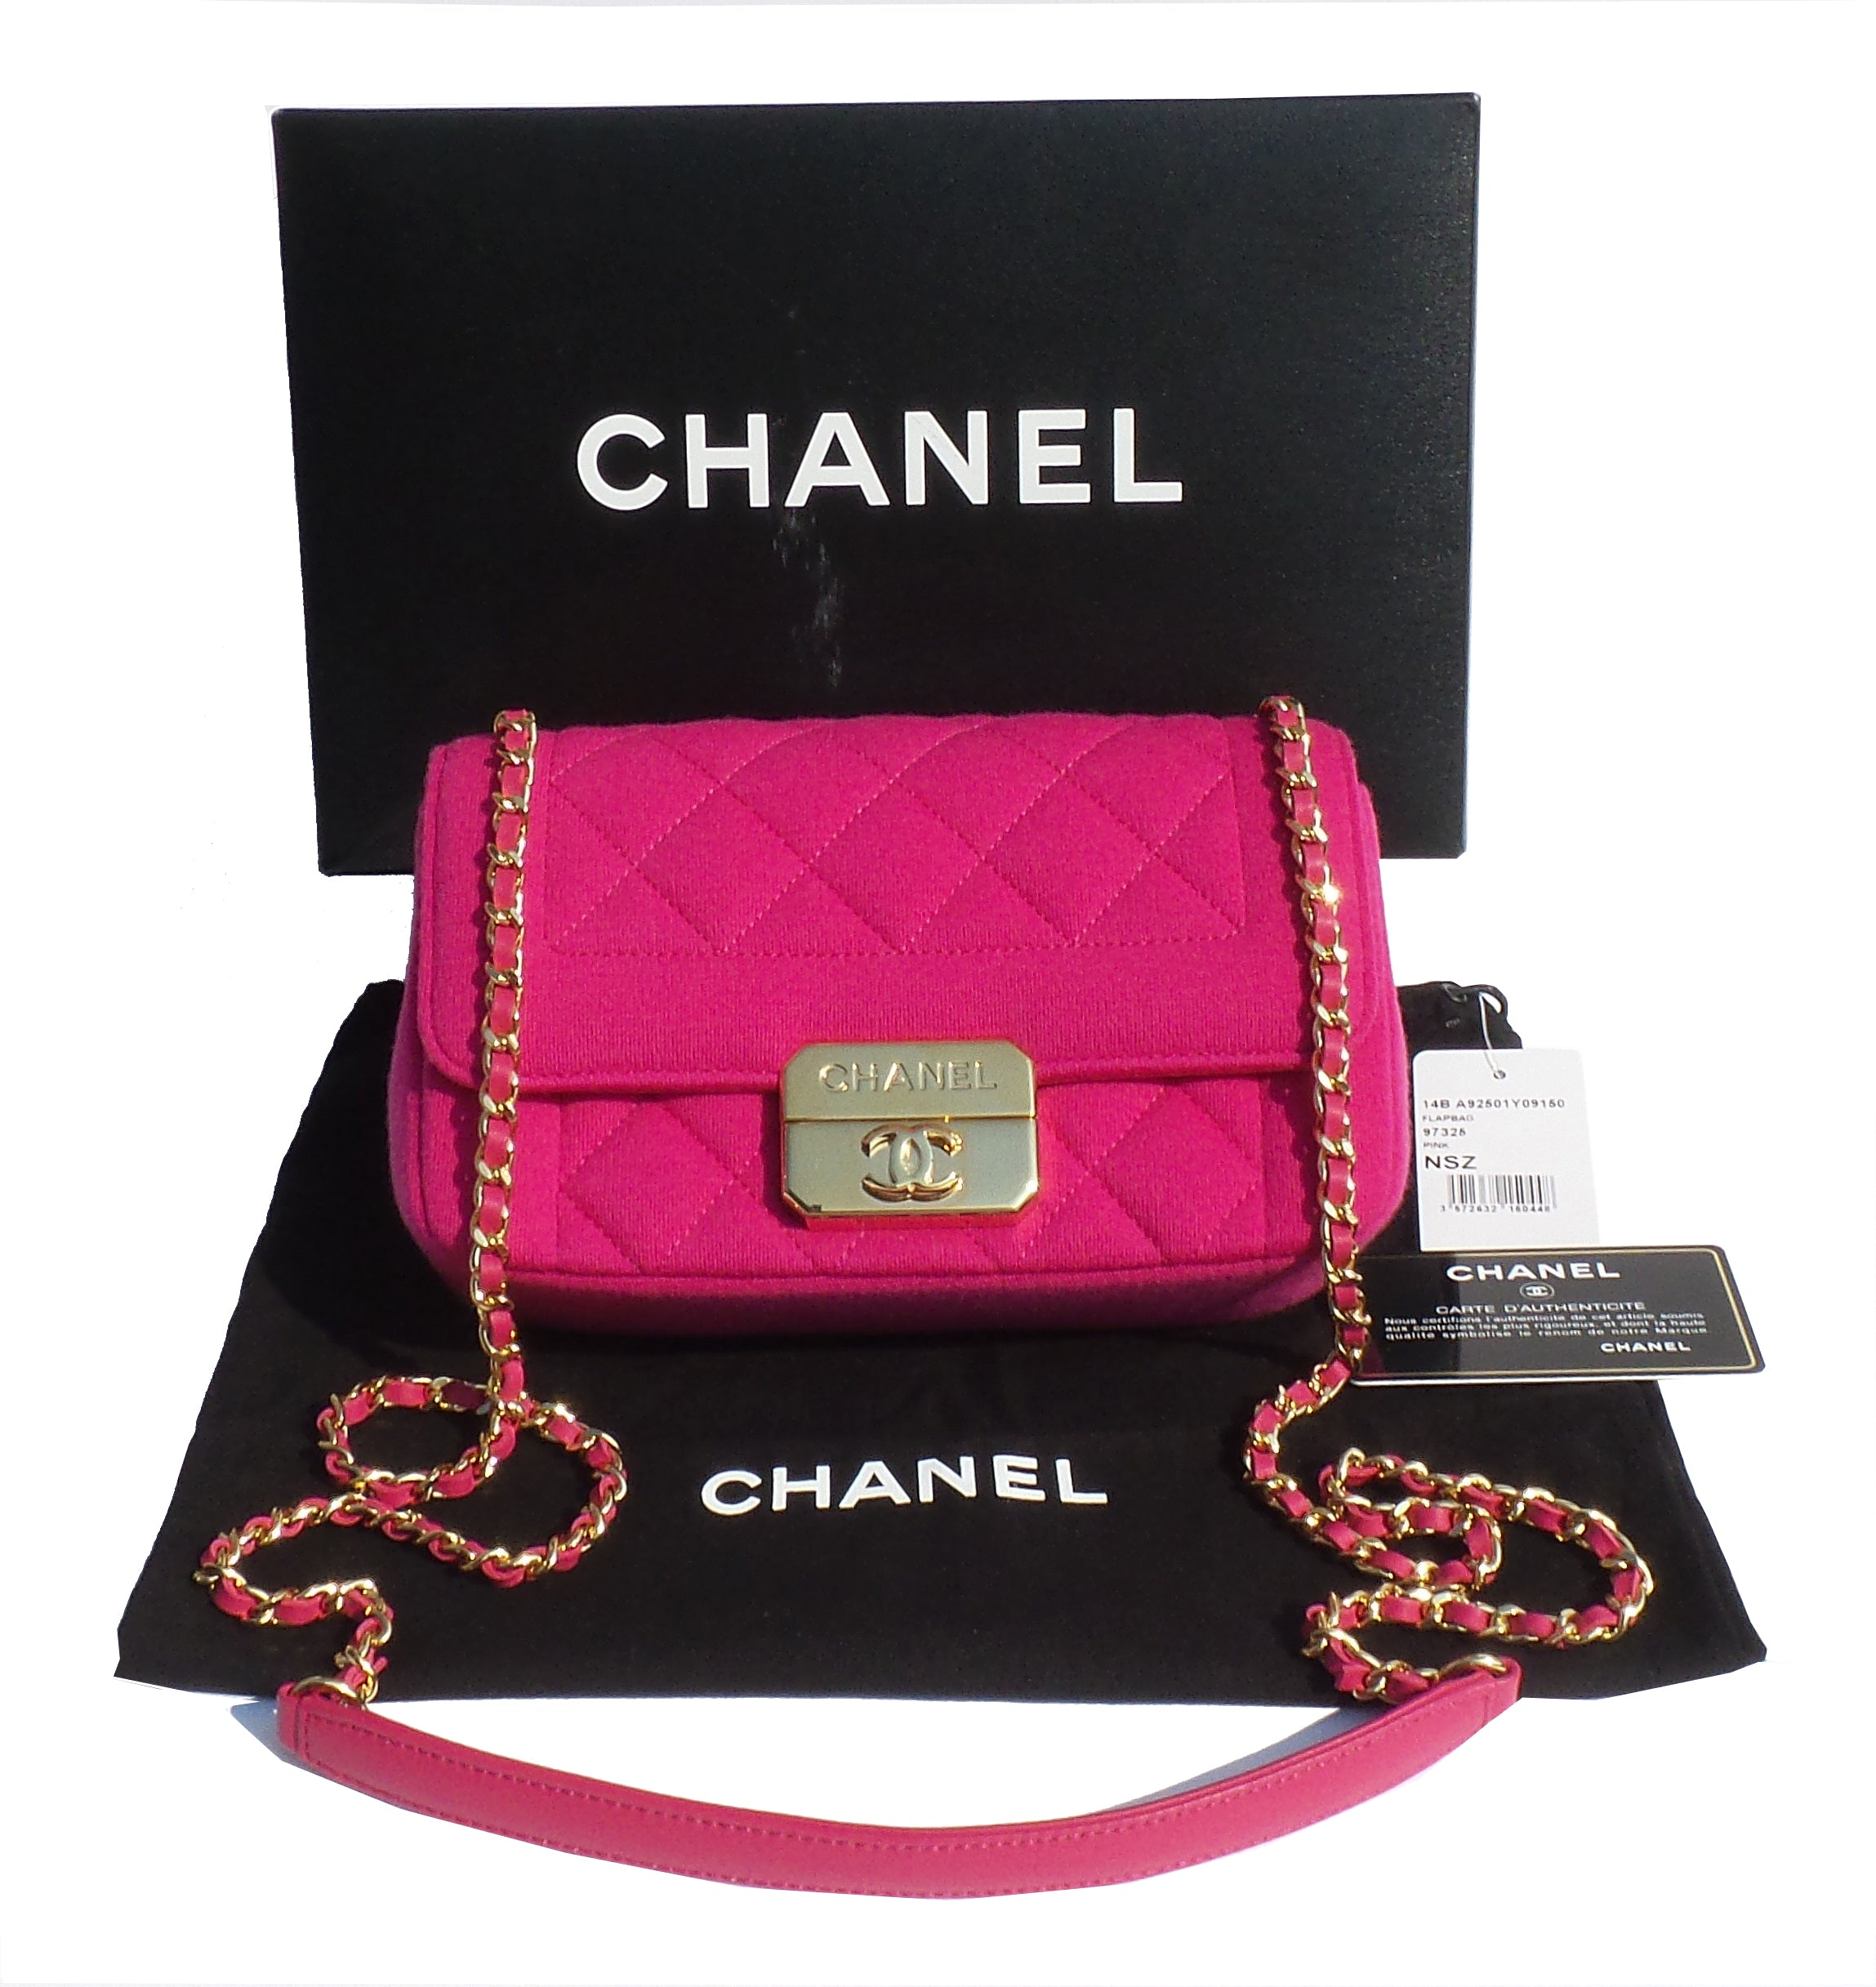 'Sold' CHANEL 14B Fuchsia Hot Pink Quilted Jersey Mini Flap Bag EC